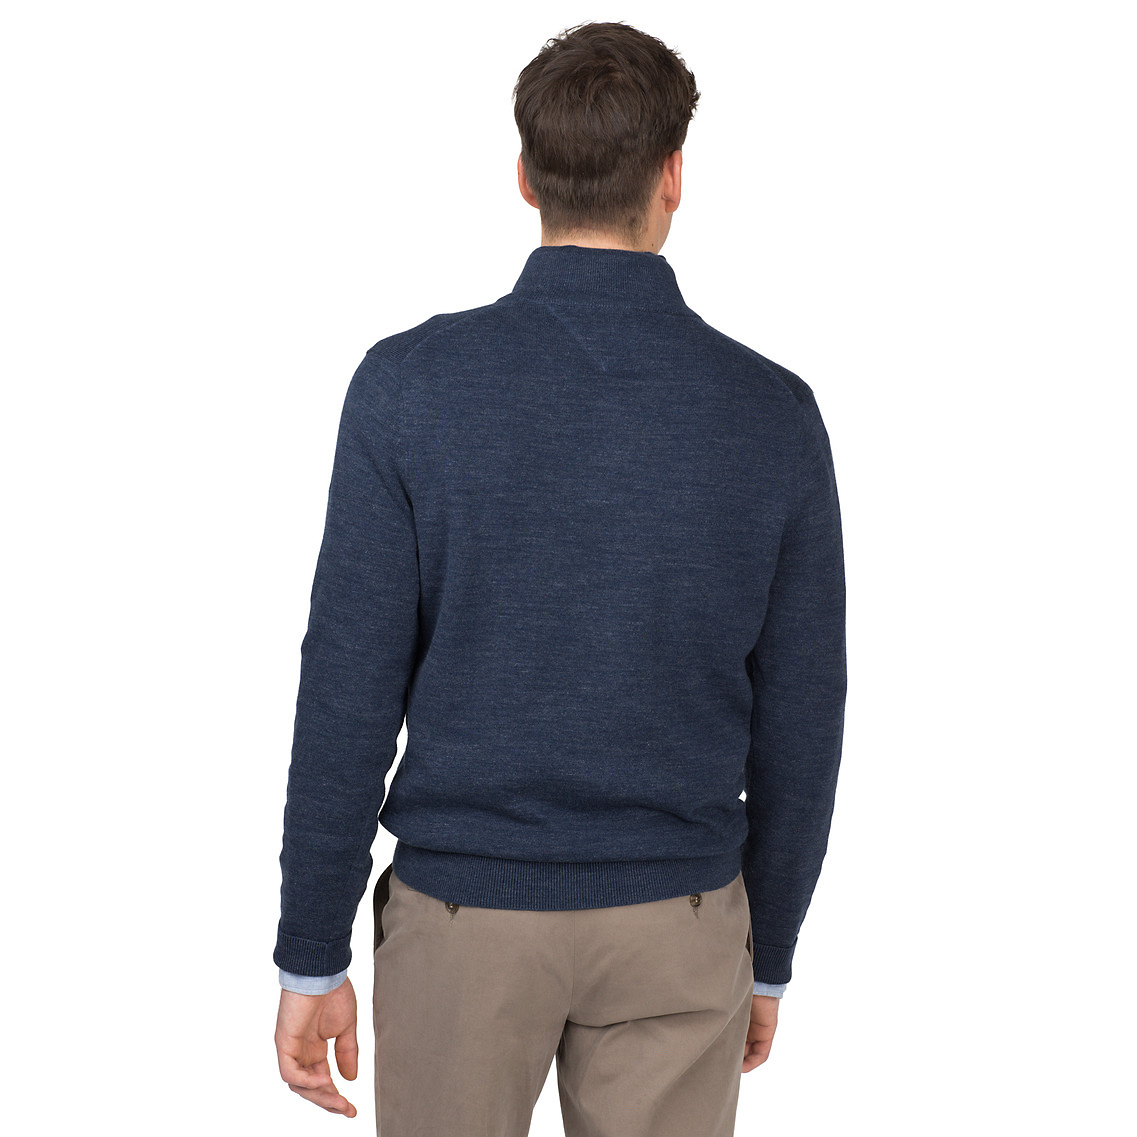 Tommy hilfiger Classic Sweater in Blue for Men   Lyst 8bca129f7fe2